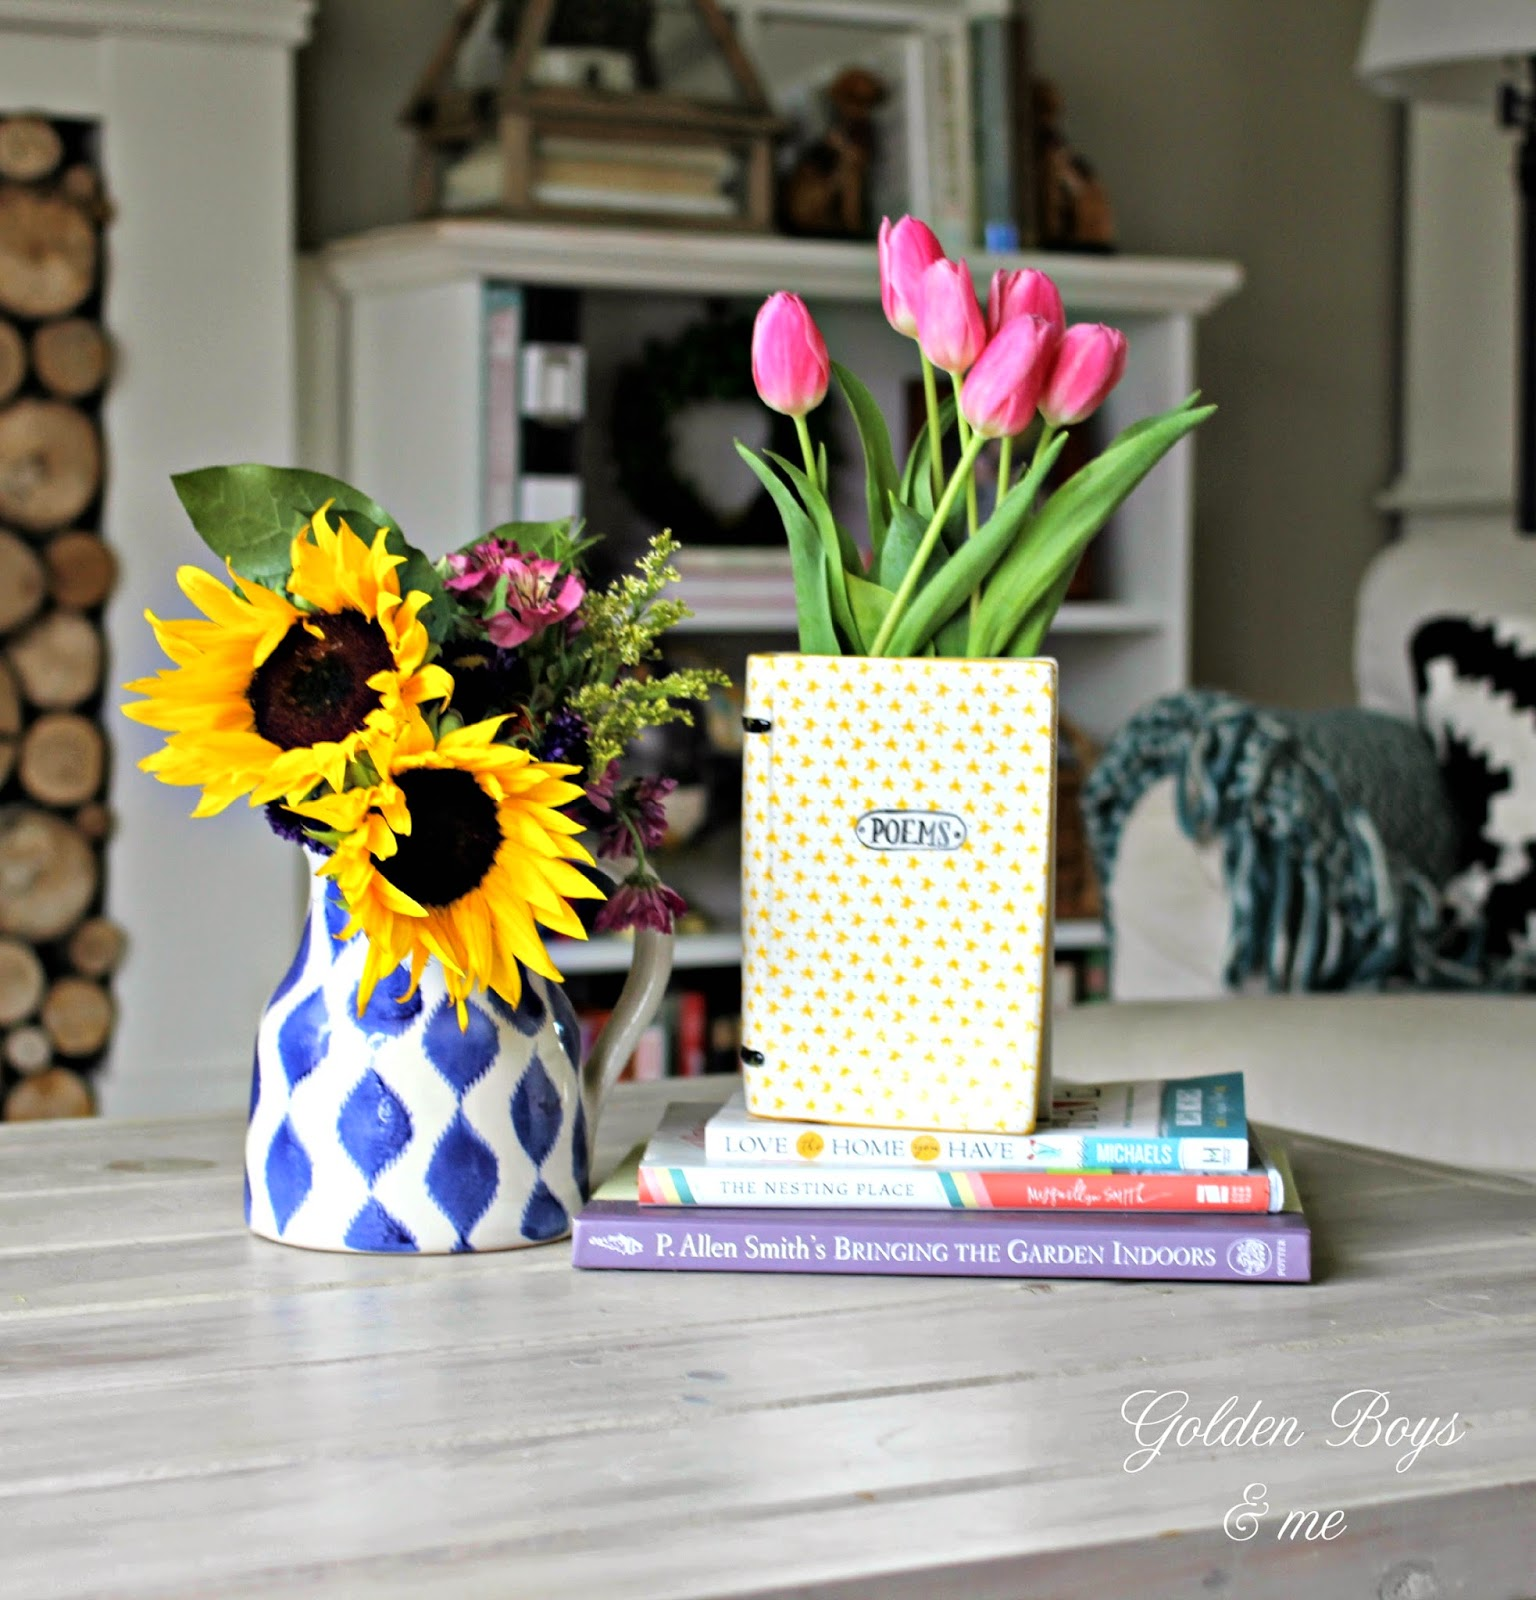 Poems verses vase from Anthropologie with spring tulips-www.goldenboysandme.com